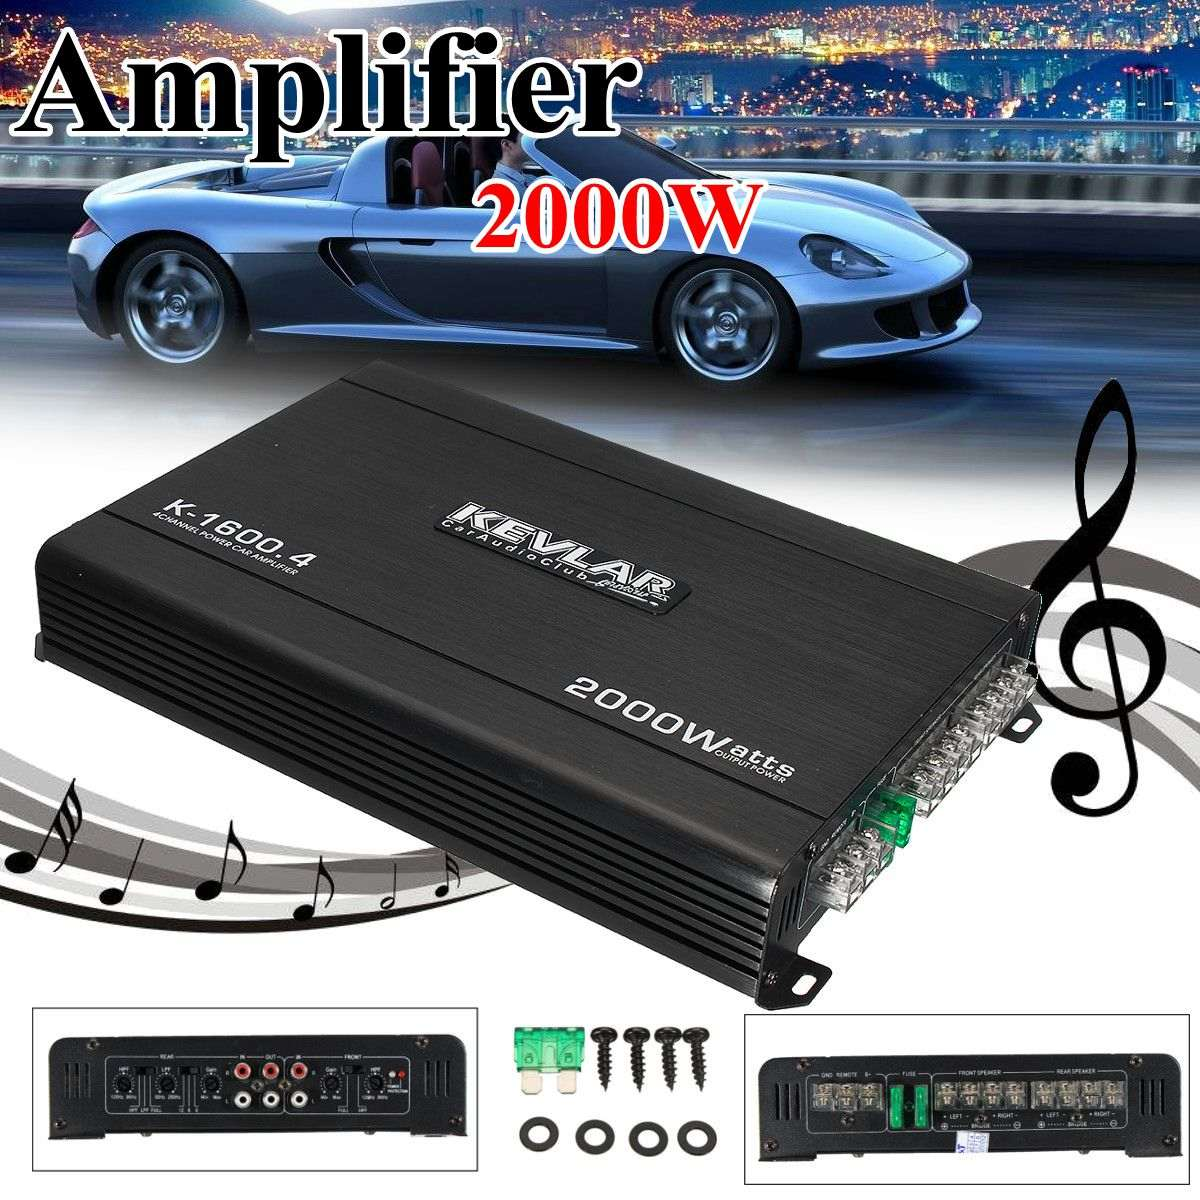 4 Channel Car Amplifier Audio 2000w 12dB High Power Car Amplifiers High Power for car home black 12v car amplifier high power 1900w audio 4 channel 4 way amplifiers booster auto free shipping dropping